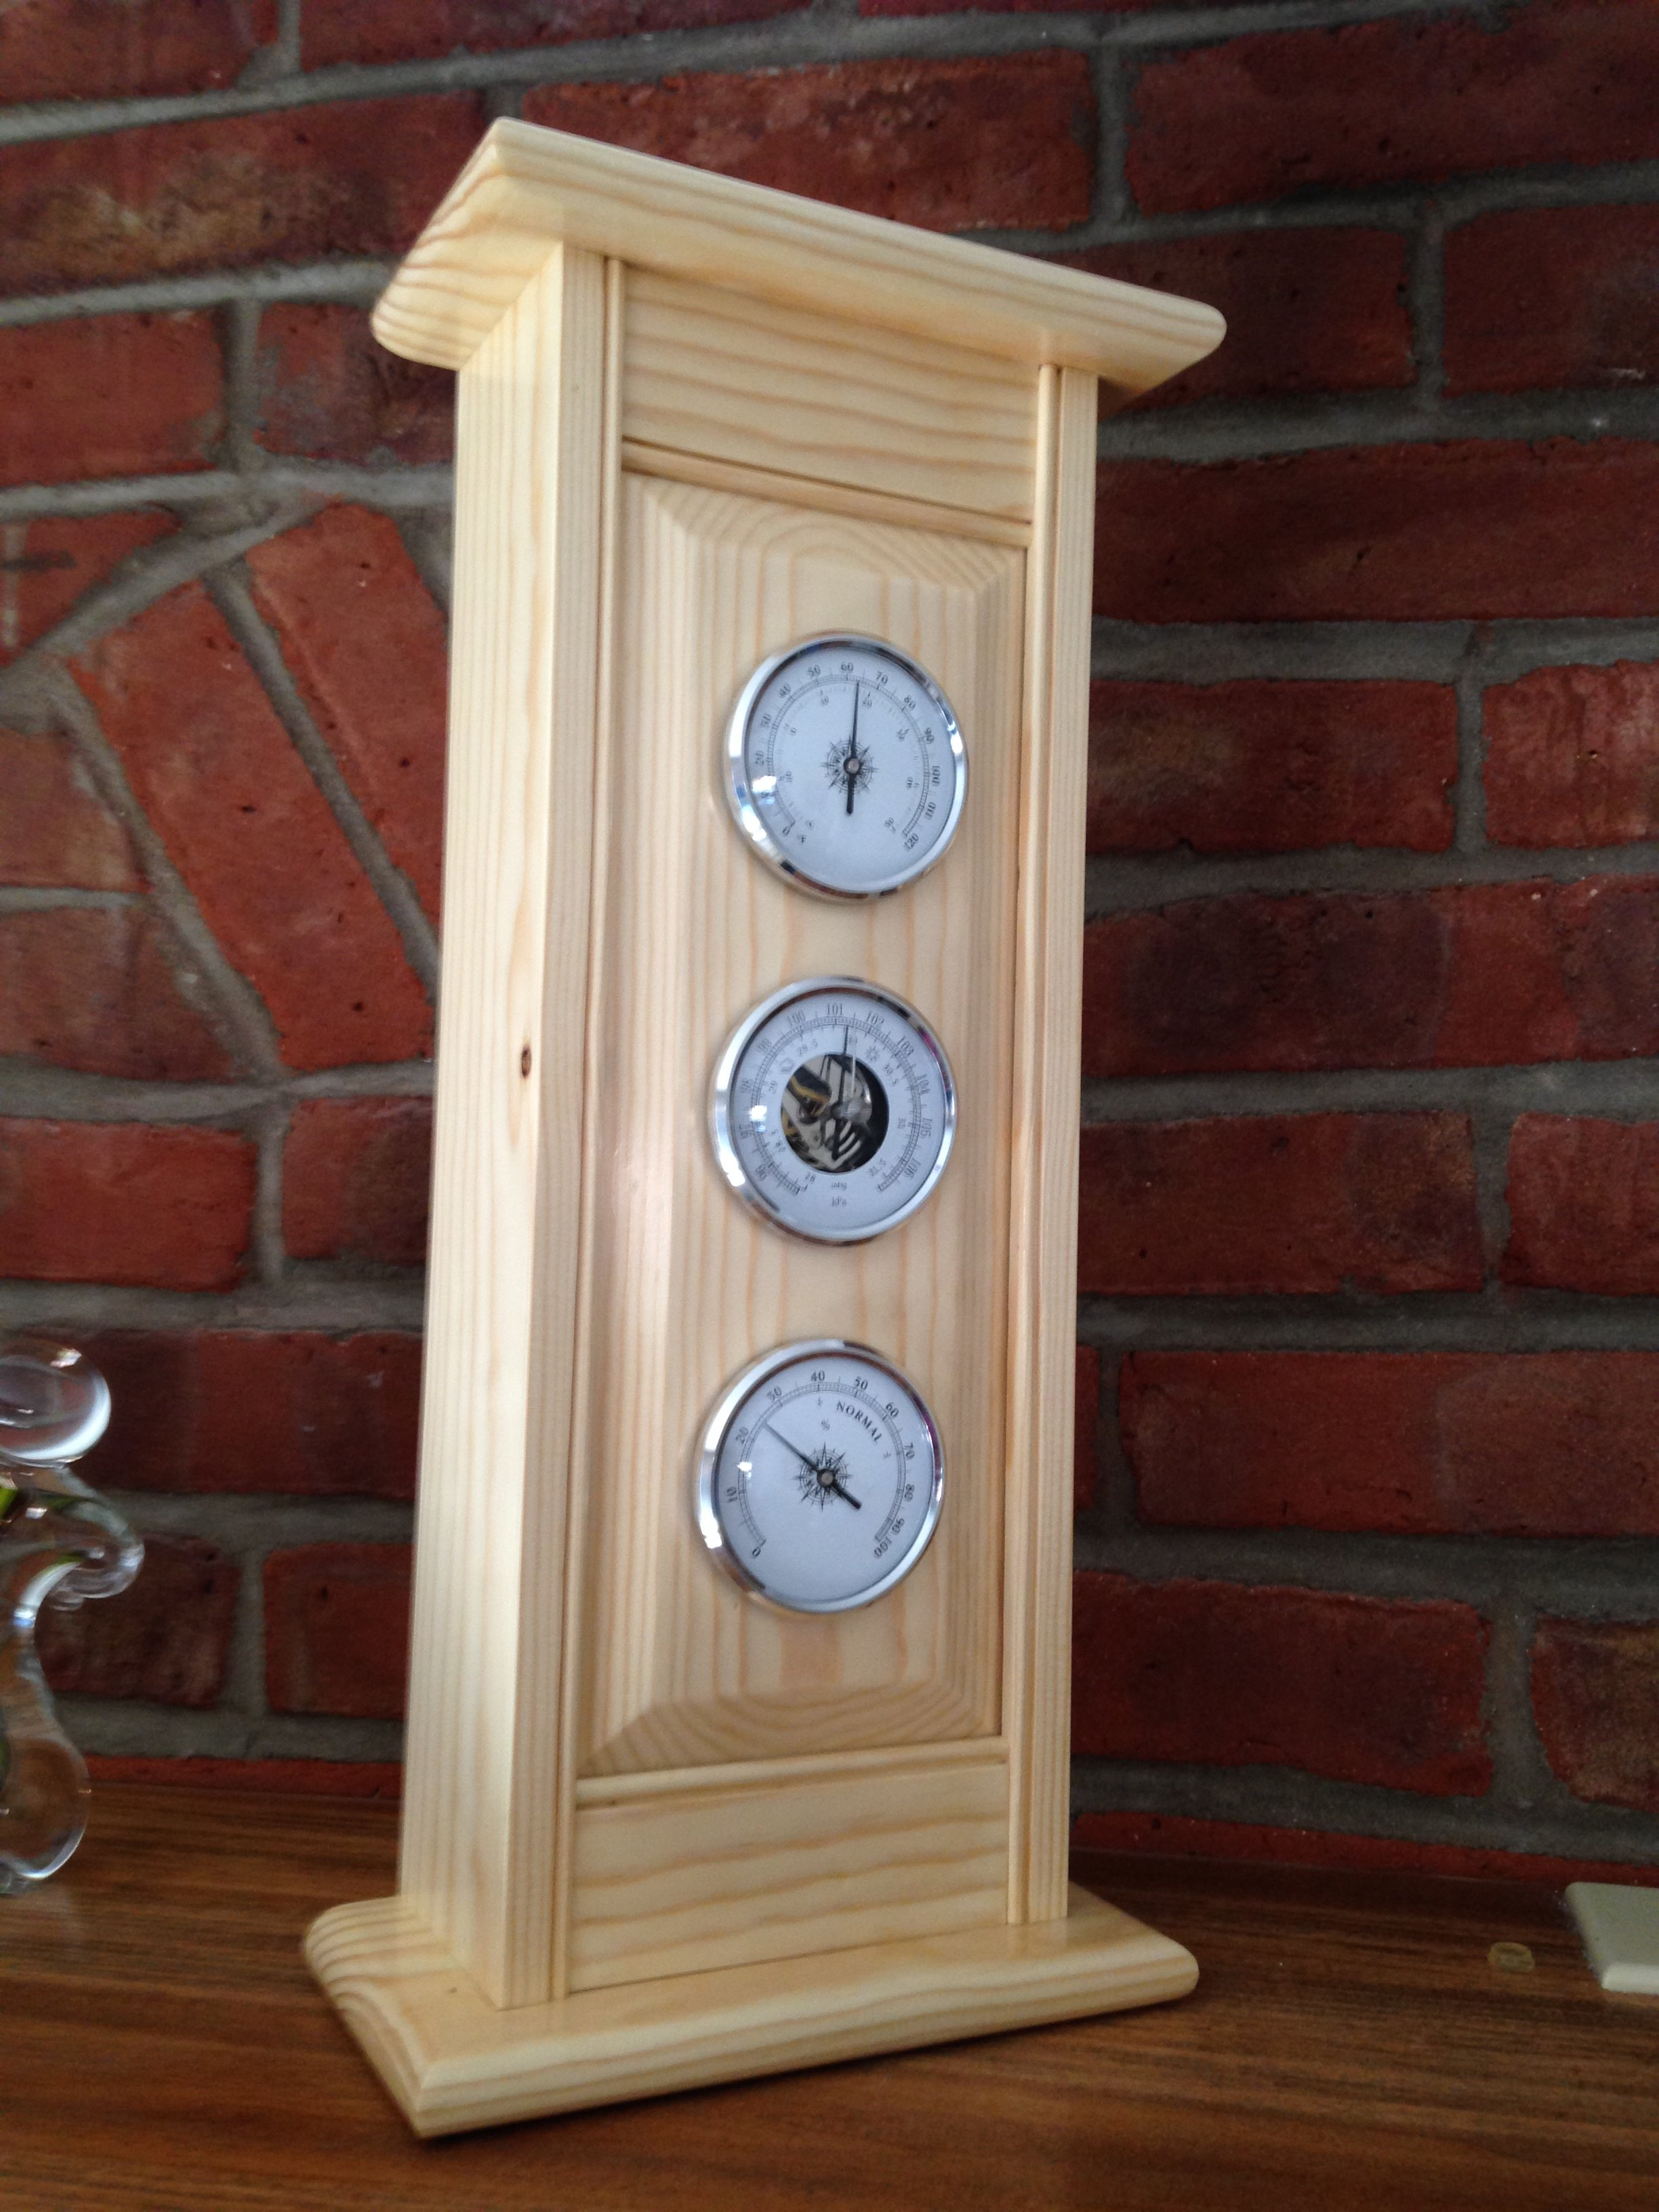 Wallclock by Denise G